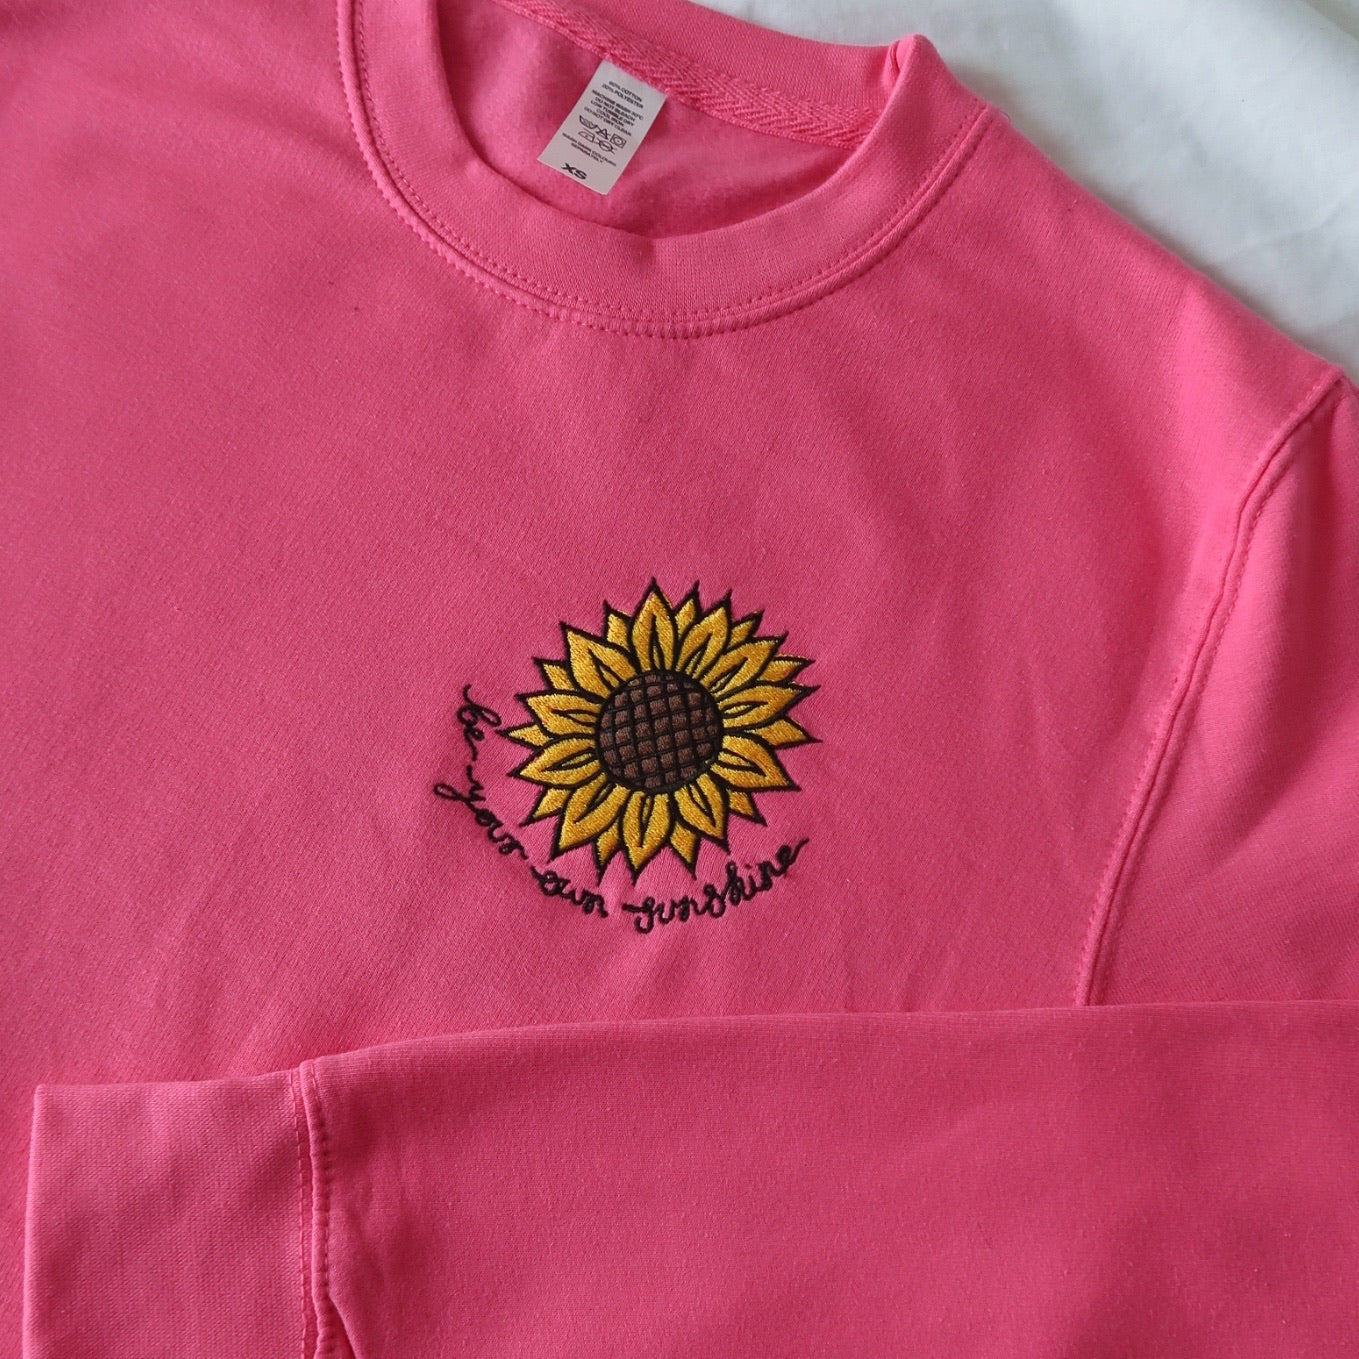 be your own sunshine embroidered sweatshirt - bright pink